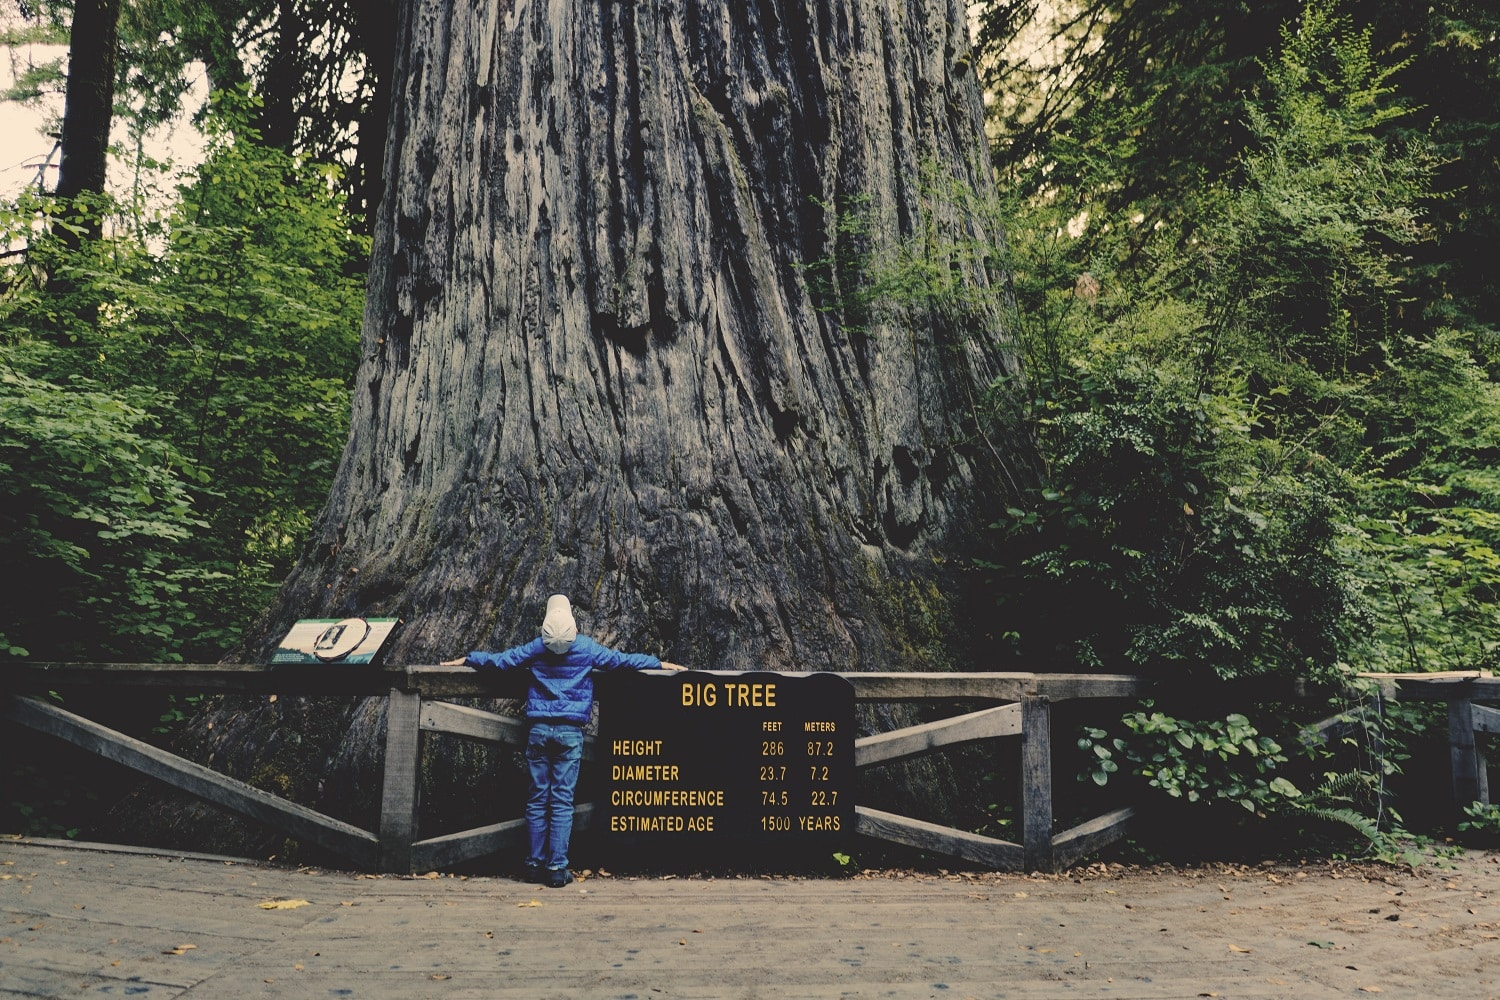 Boy standing next to and hugging a large tree.